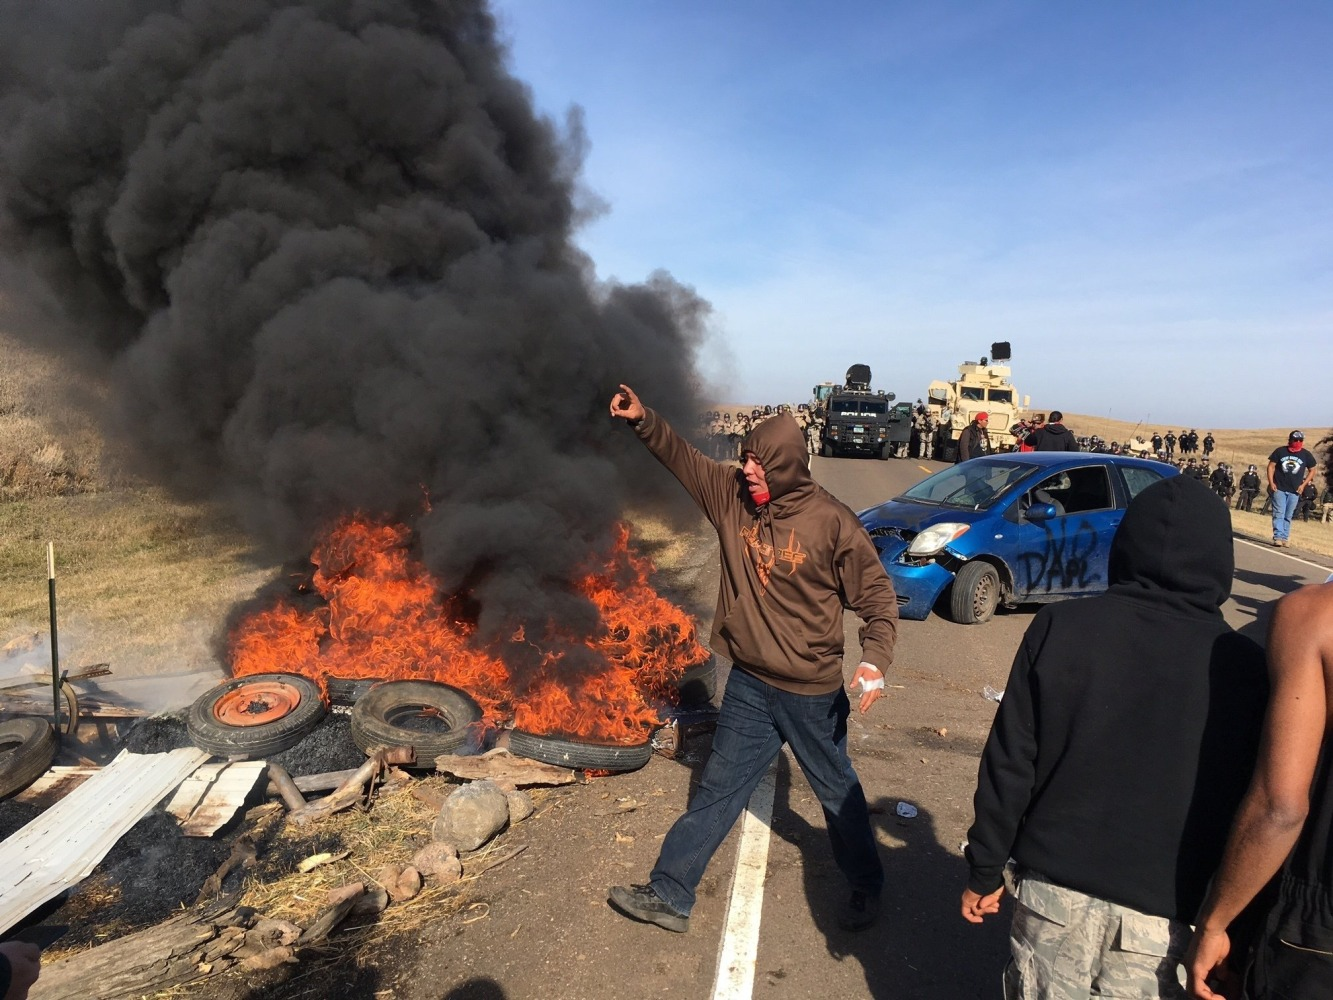 Dakota Access Pipeline: More Than 100 Arrested as Protesters Ousted From Camp